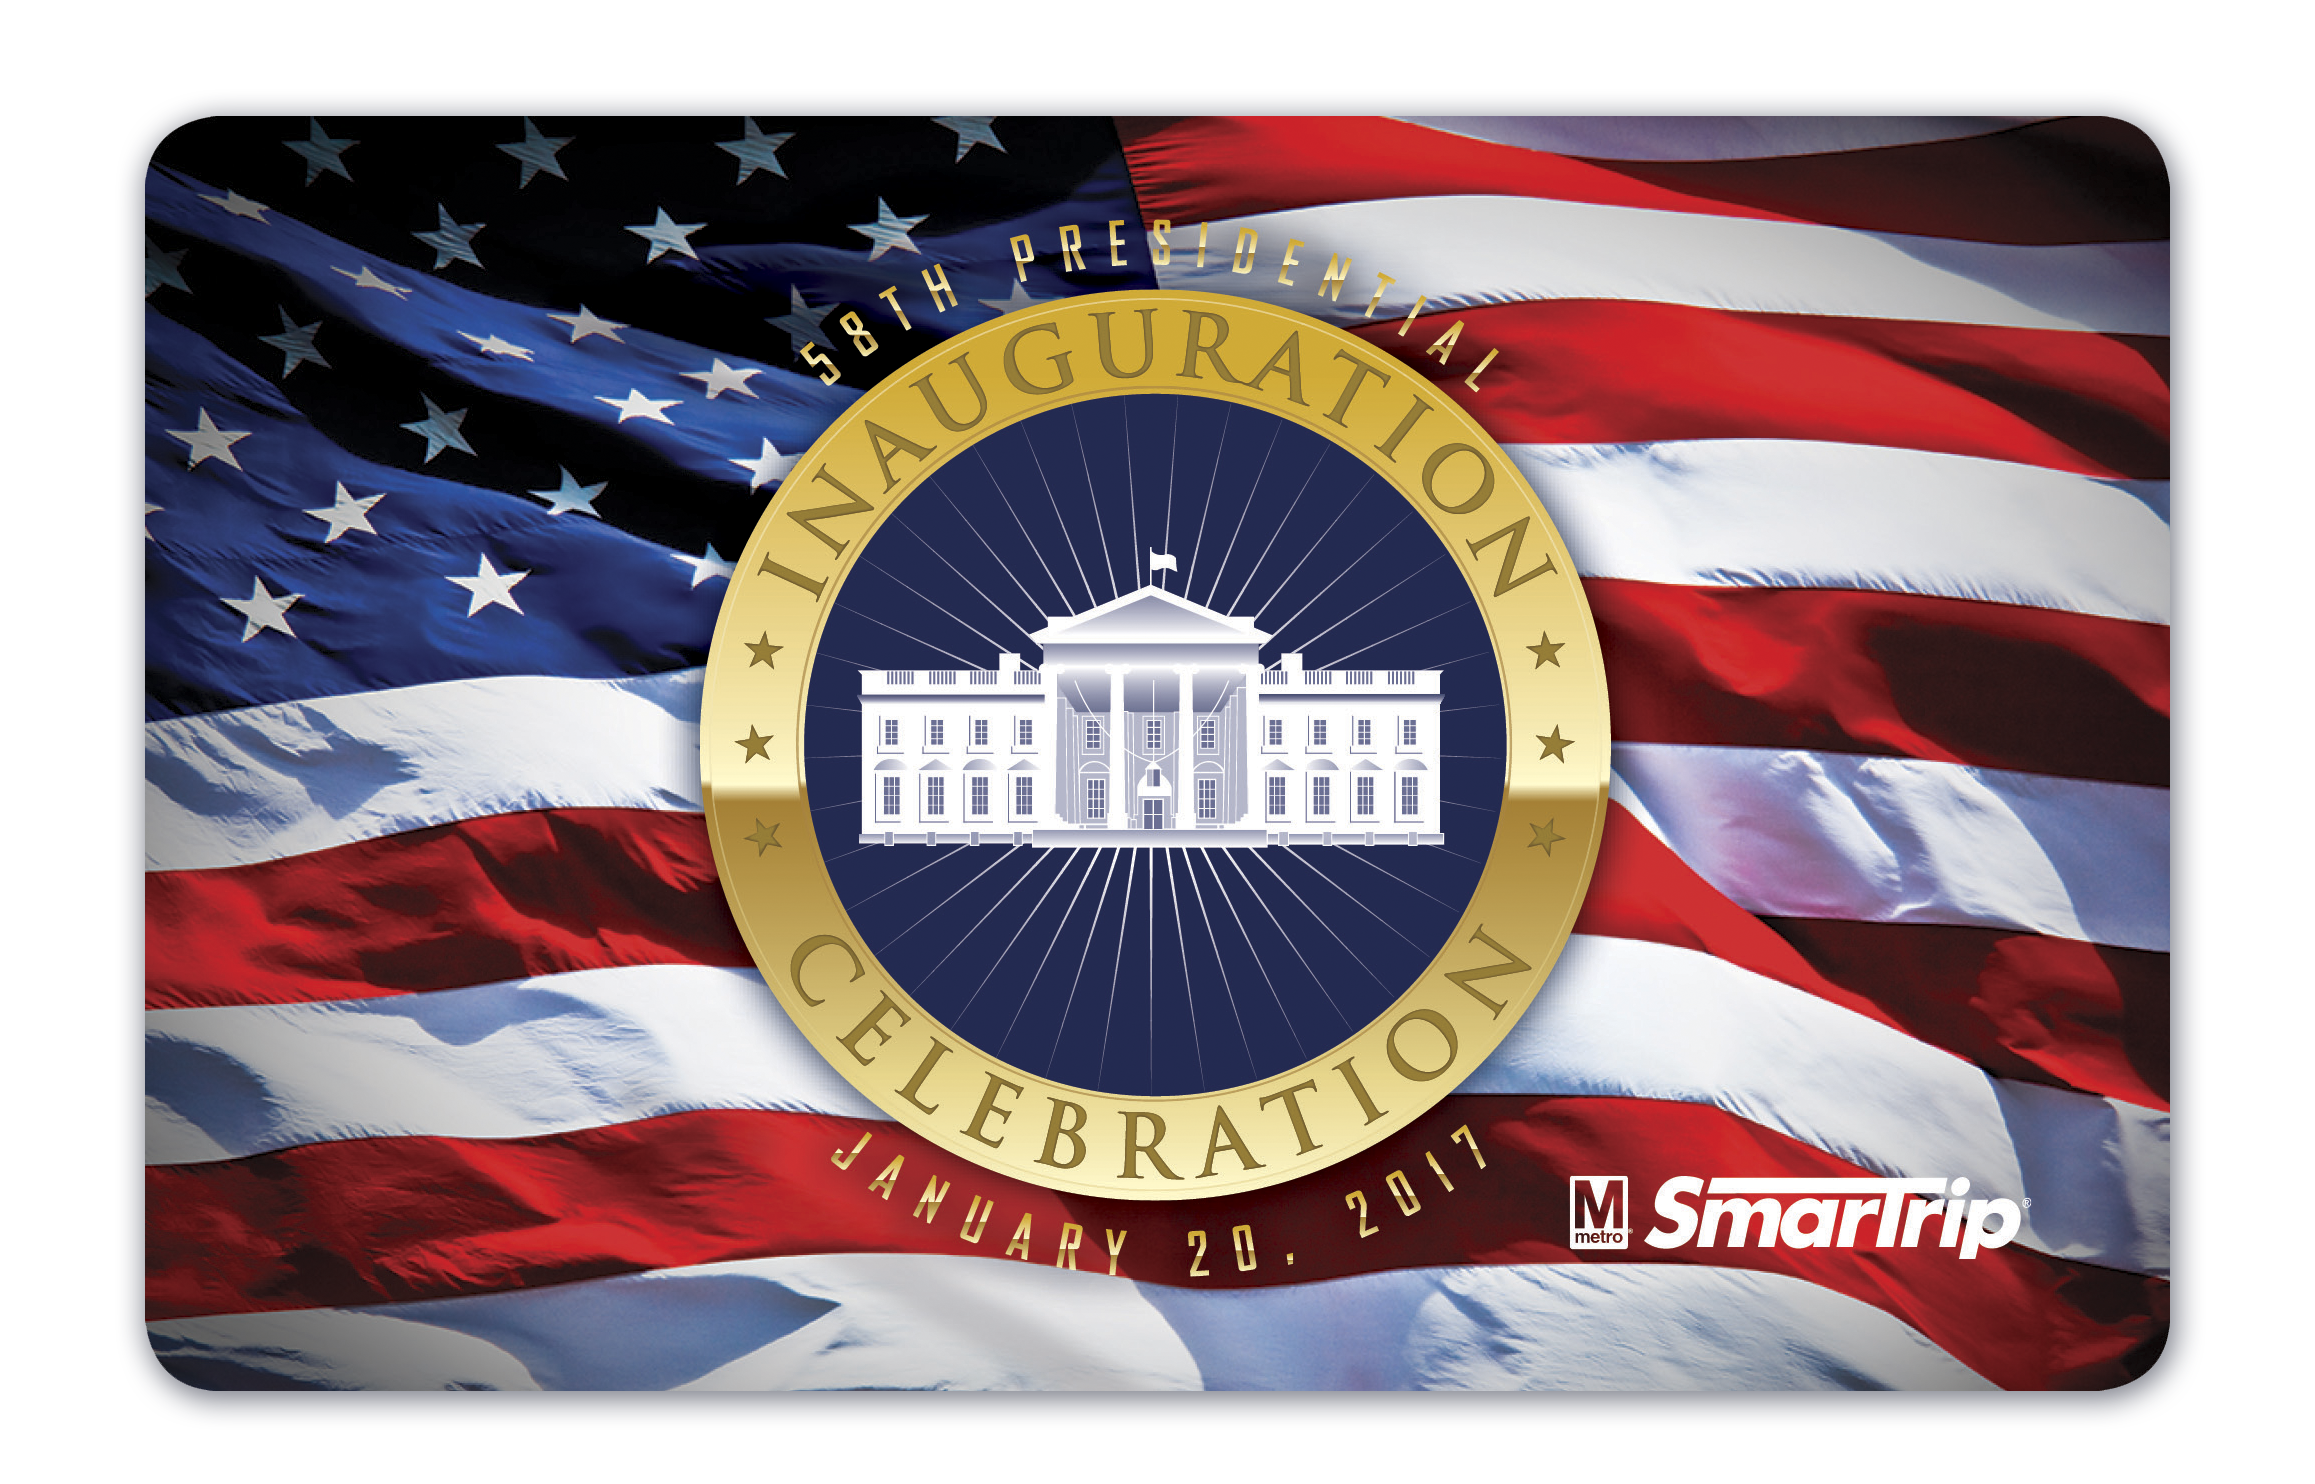 Inauguration SmarTrip Trump design